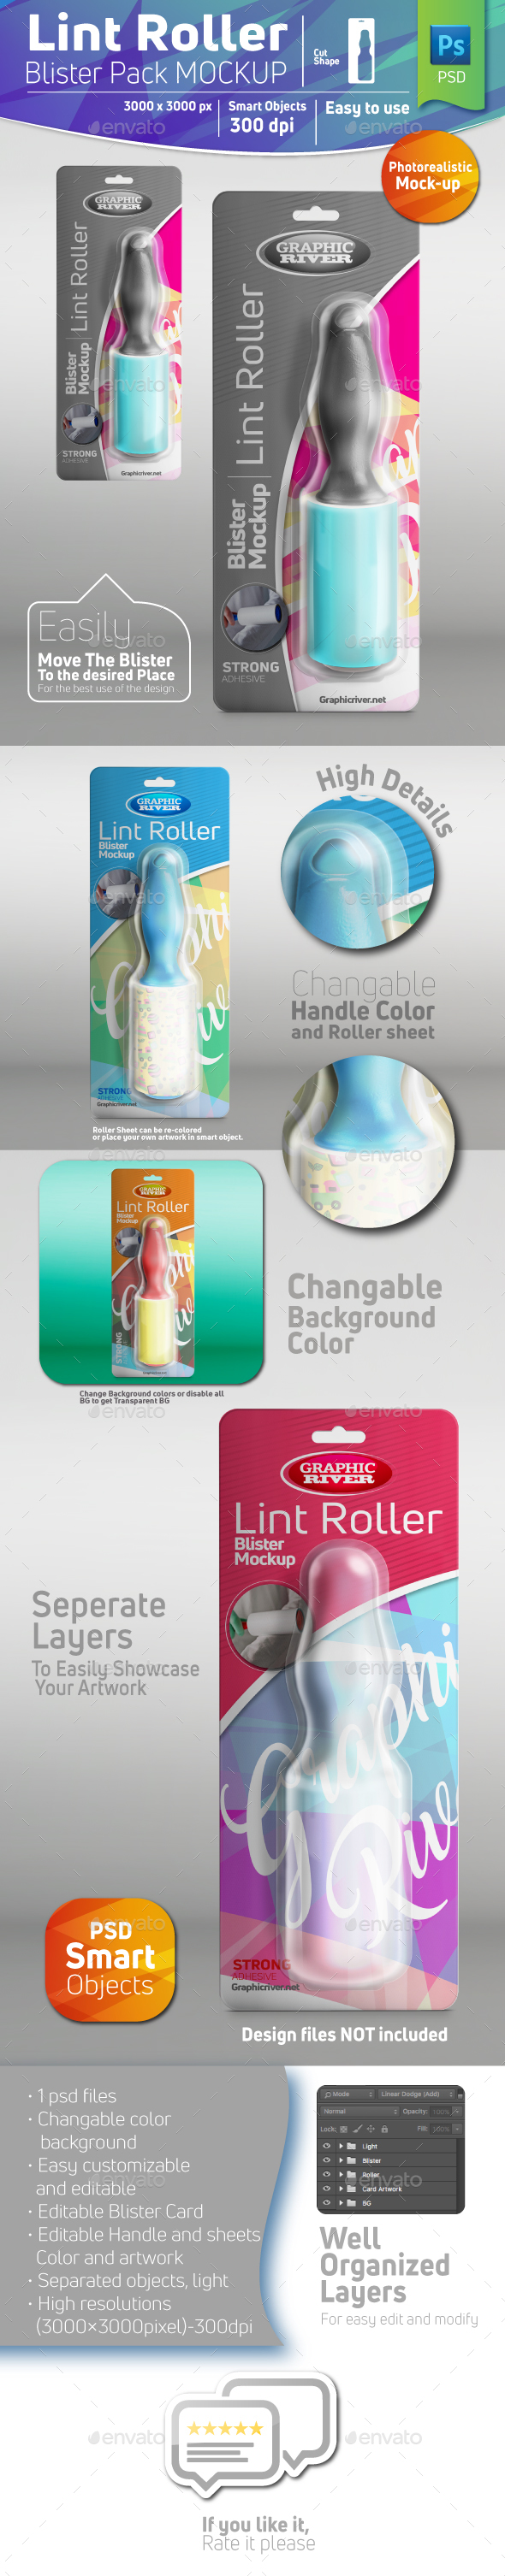 GraphicRiver Lint Roller Blister Pack Mockup With Roller Inside 20975782